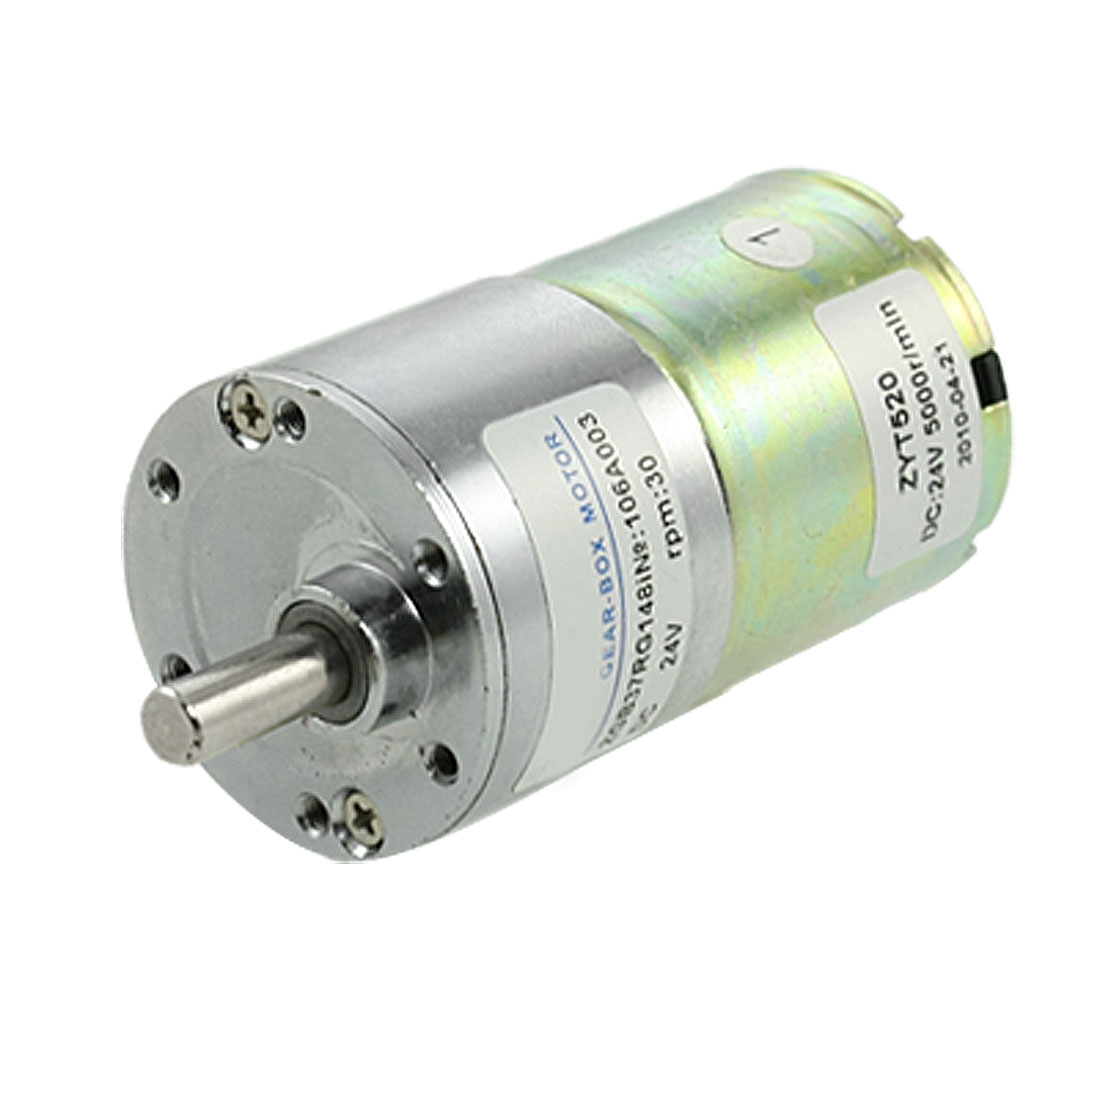 6mm Dia Shaft DC 24V 0.33A 30RPM Speed Reducing Gearbox Motor